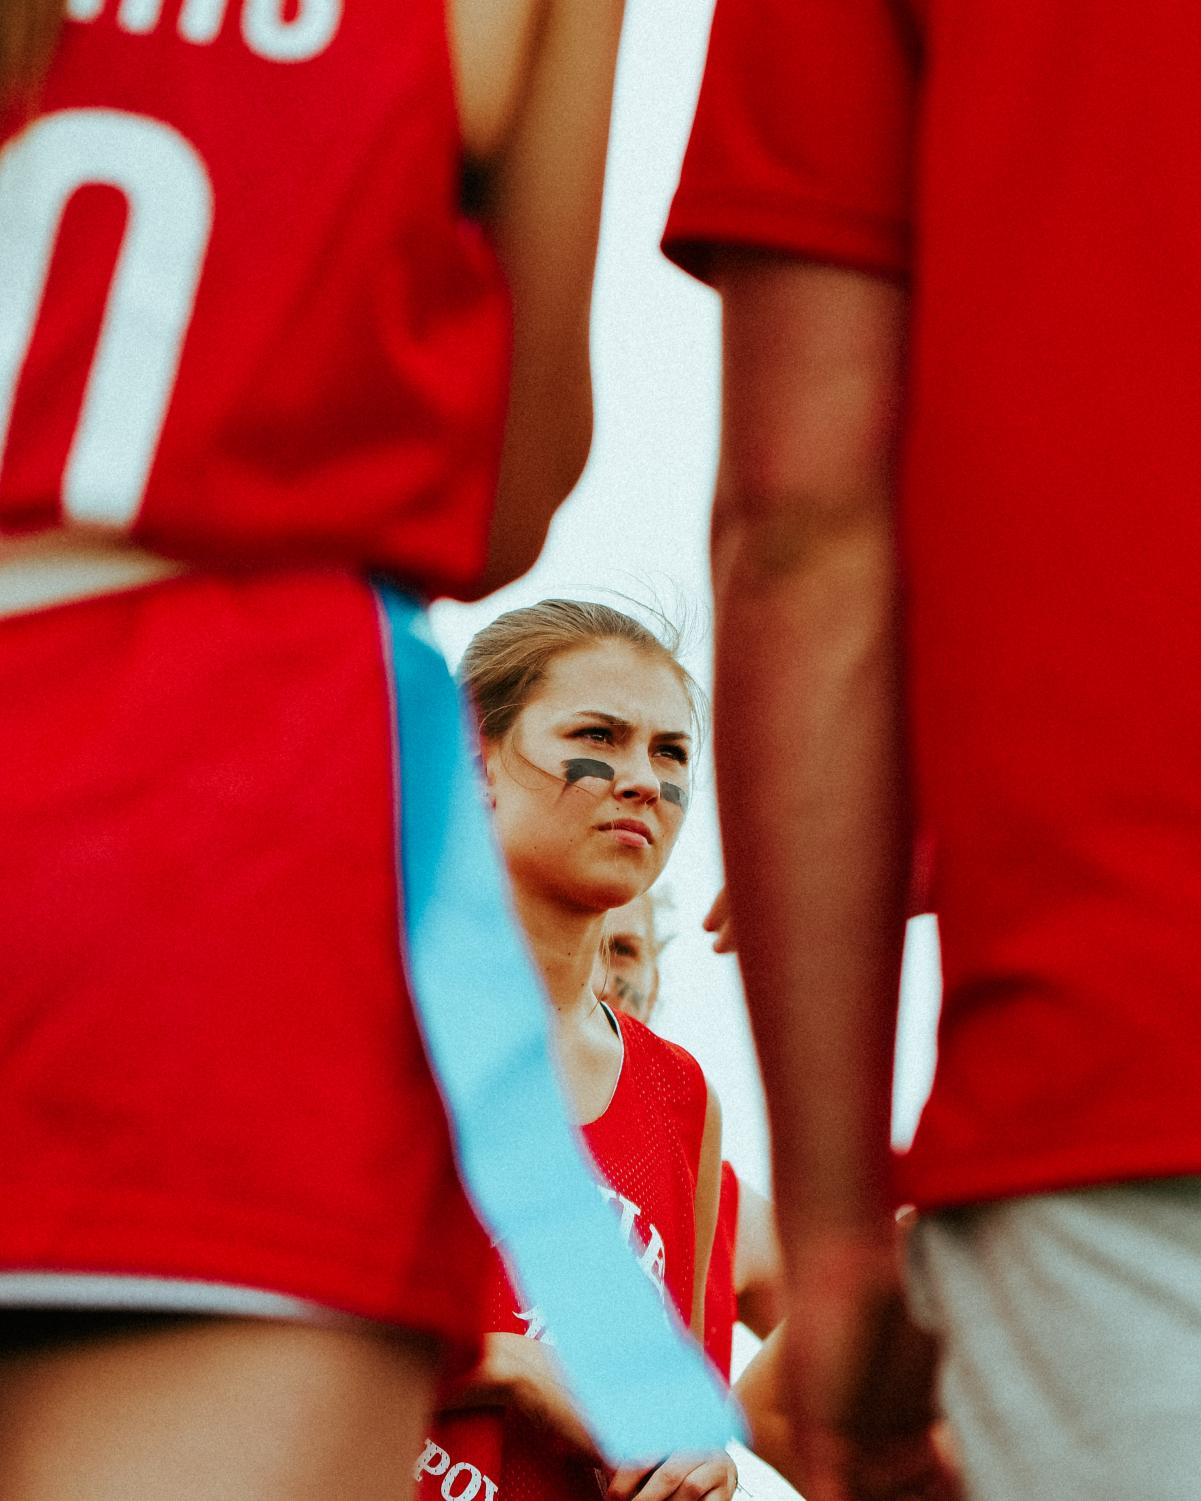 Junior+Morgan+Boyd+listens+to+coaches+during+halftime+of+powderpuff+game.+%22I+really+liked+the+team+bonding+this+year%2C%22+said+Boyd.+